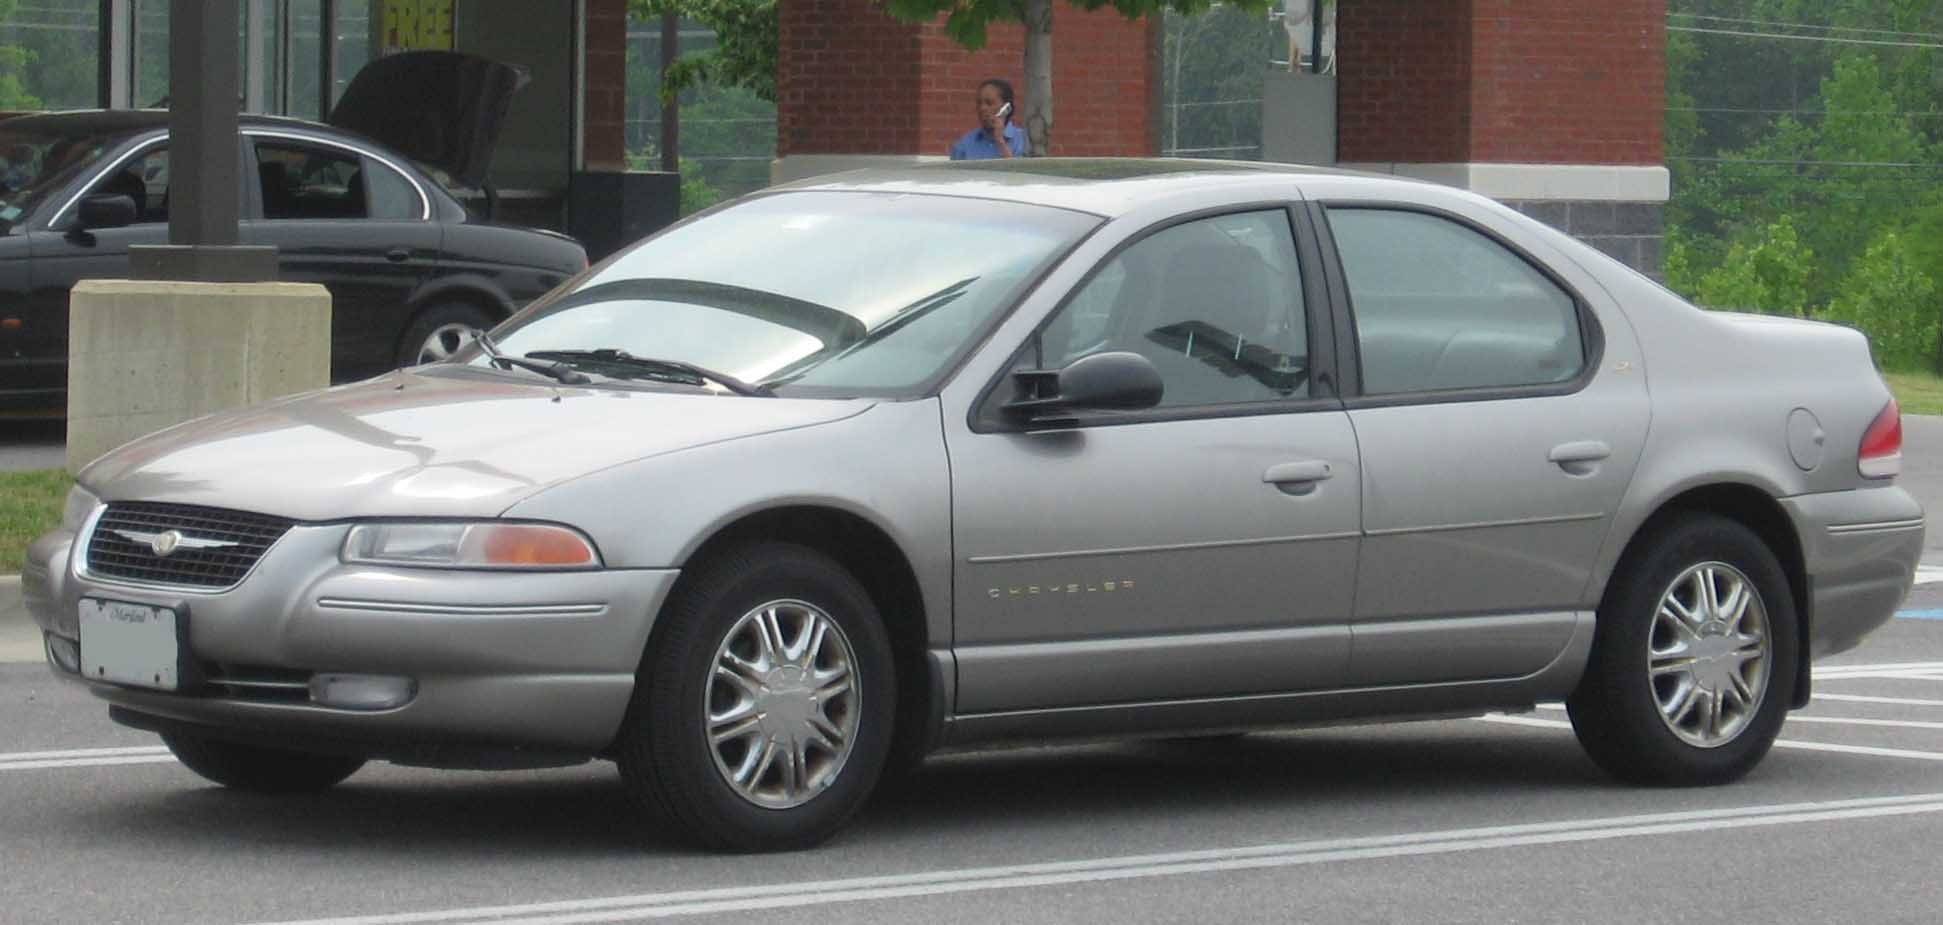 File:1999-2000 Chrysler Cirrus.jpg